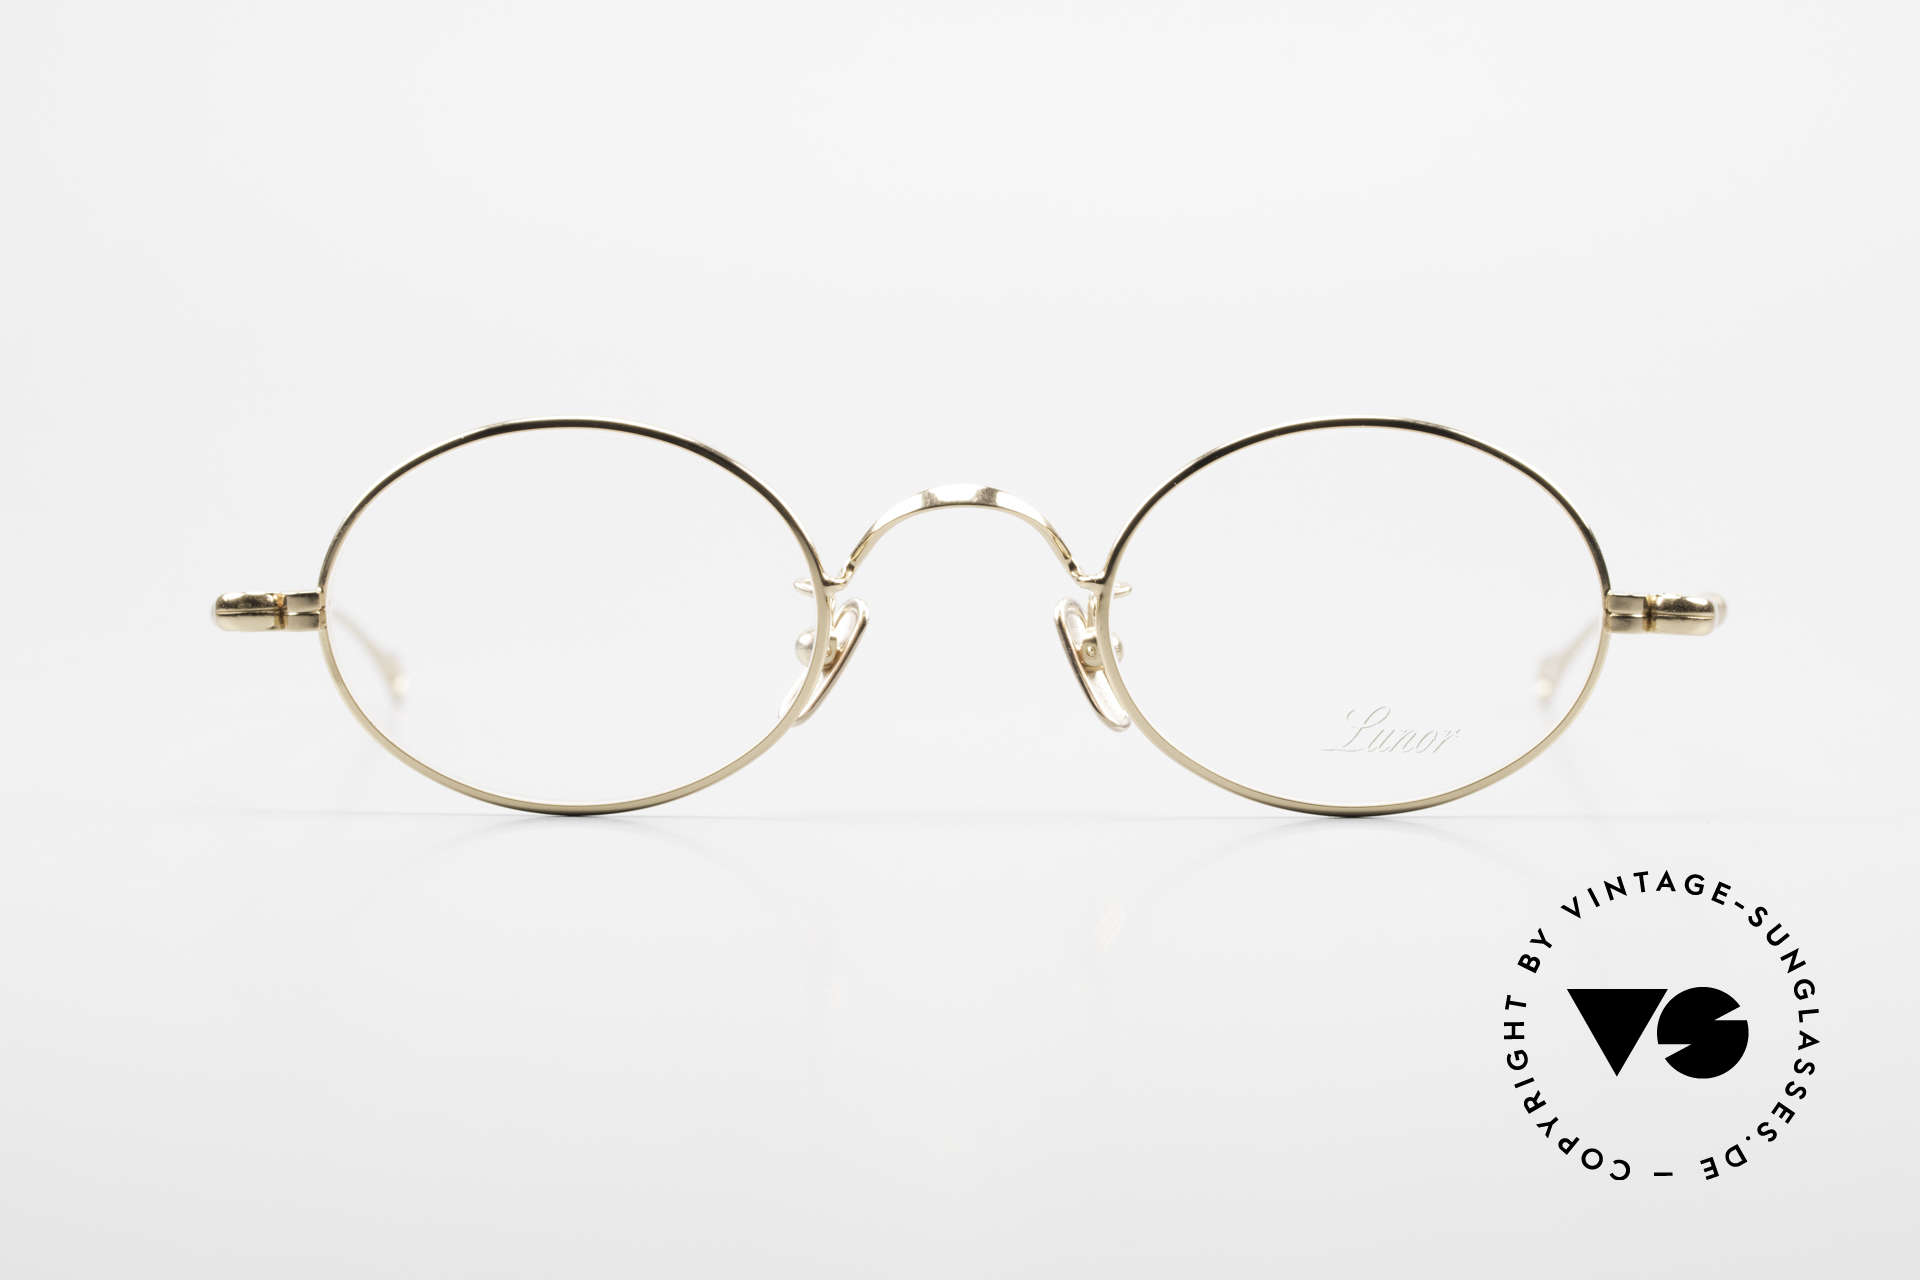 Lunor V 100 Oval Eyeglasses Gold Plated, without ostentatious logos (but in a timeless elegance), Made for Men and Women